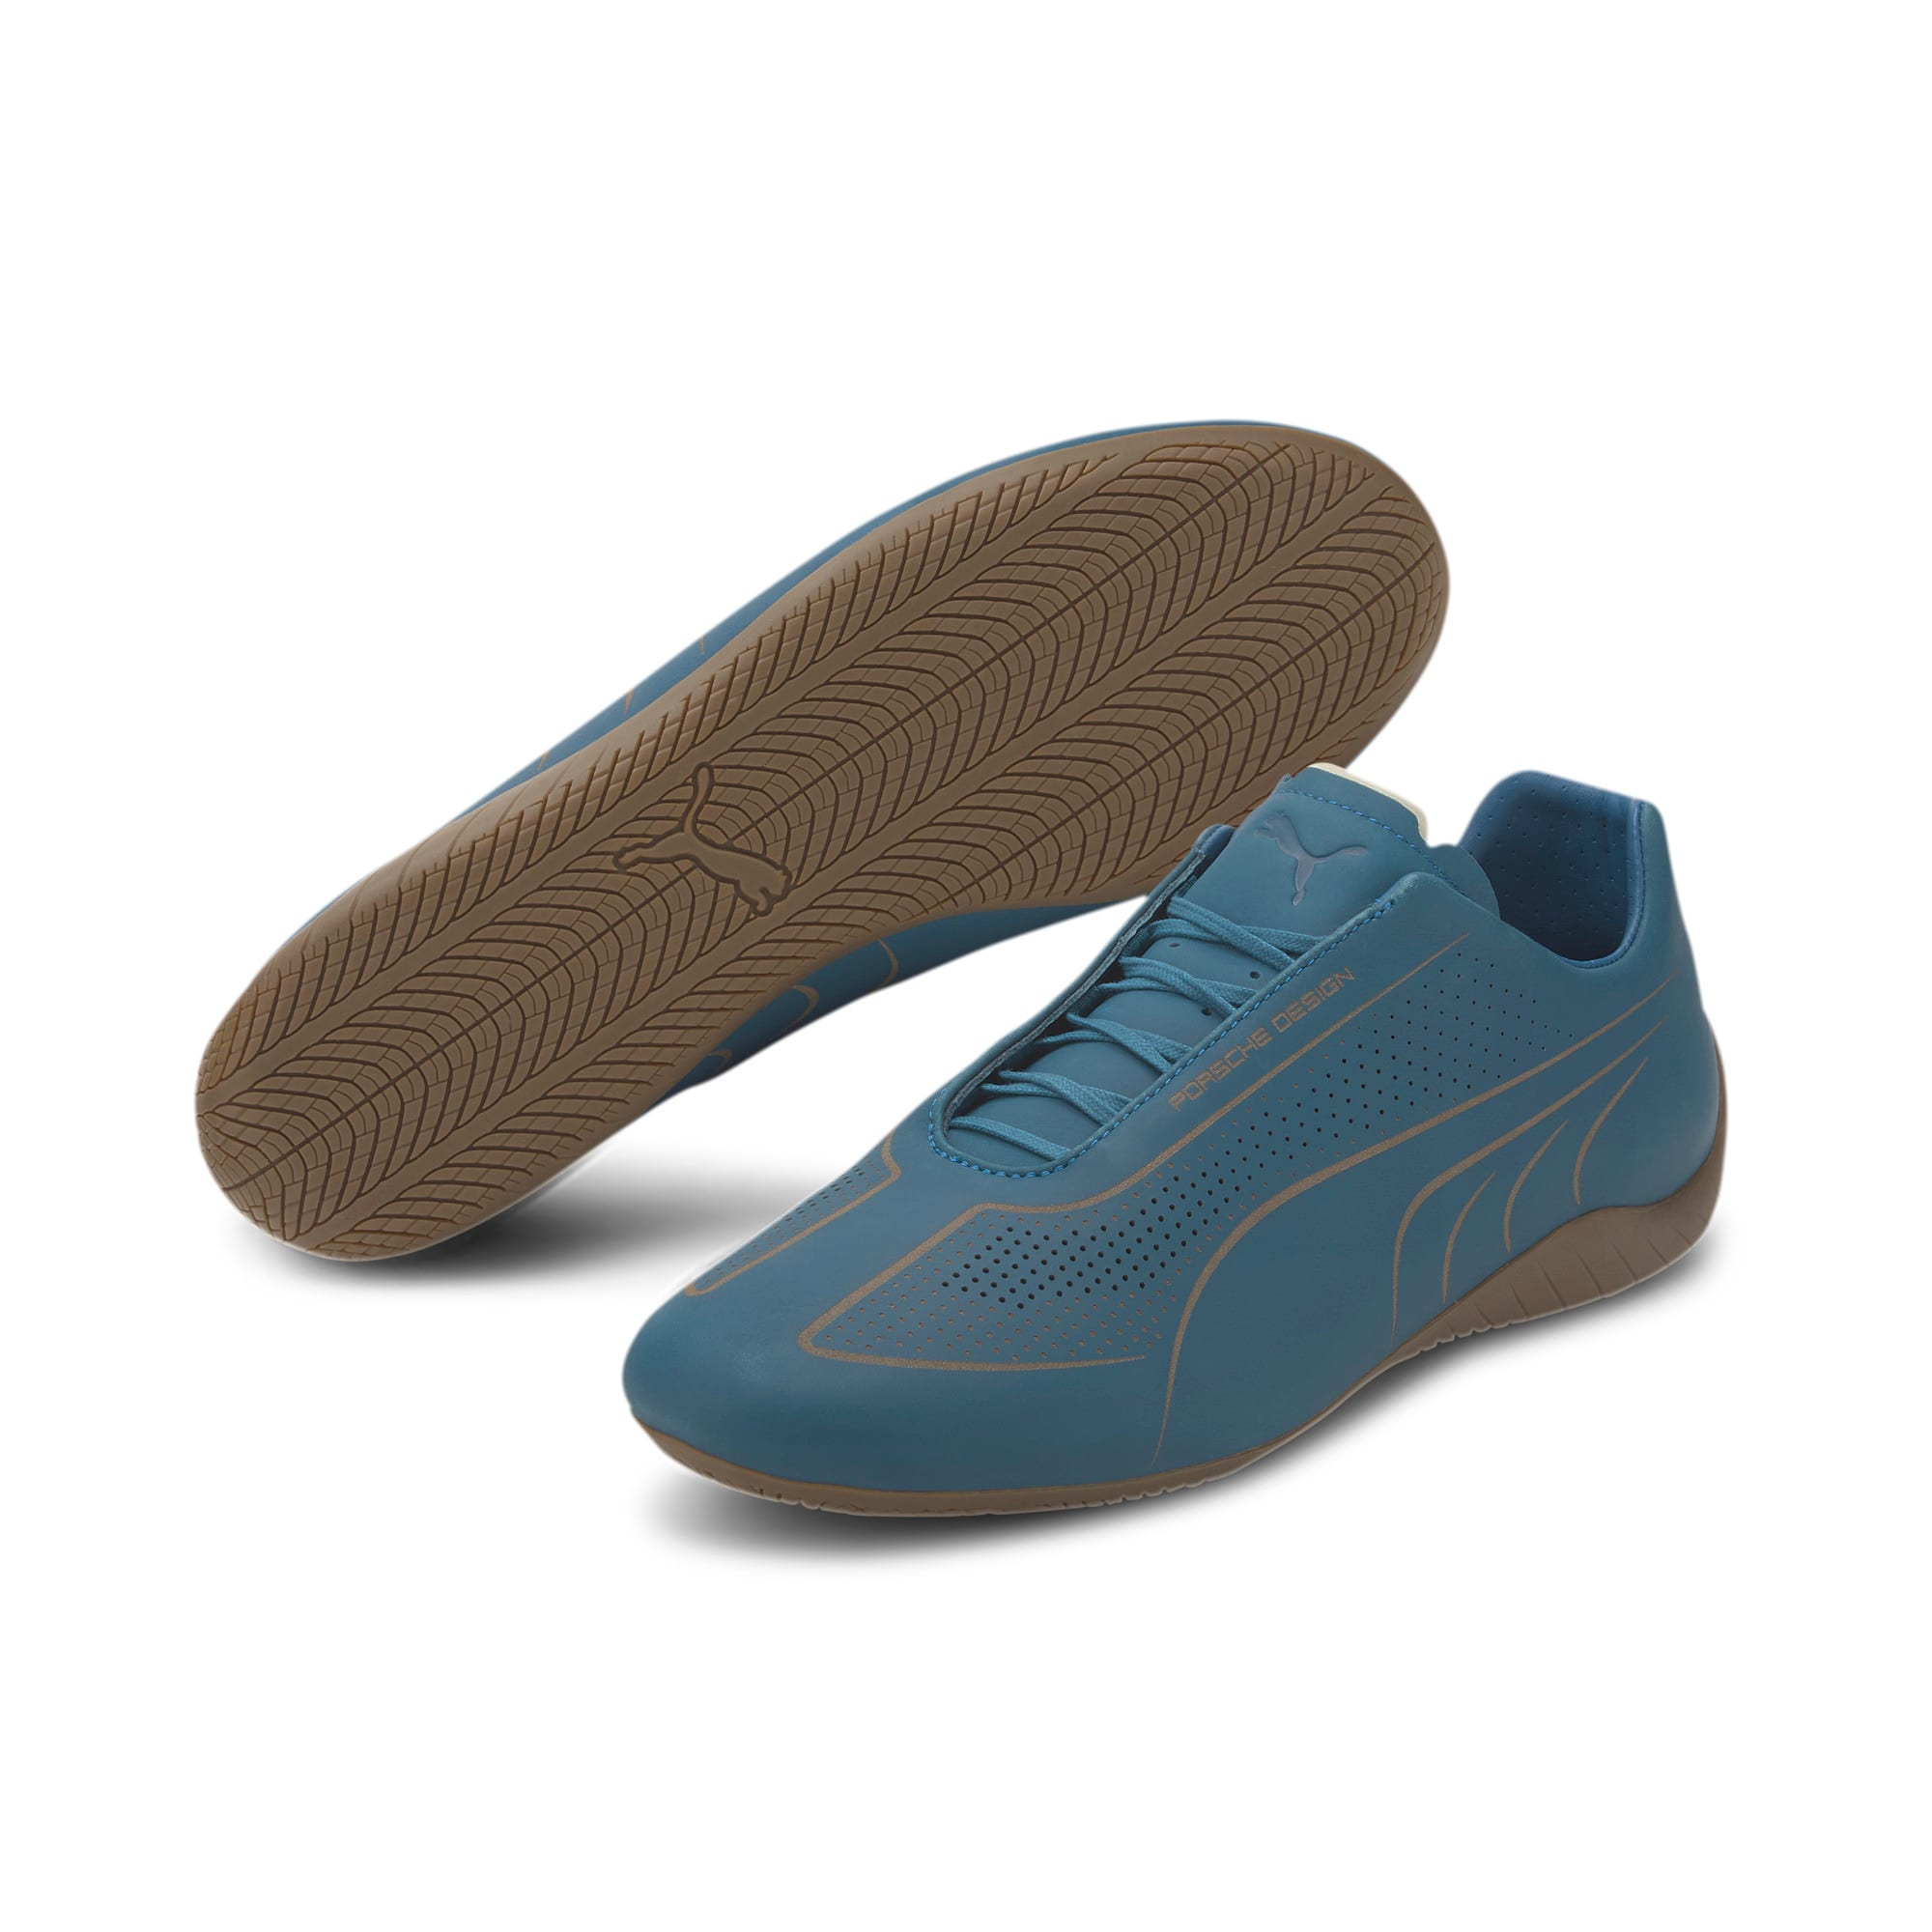 Thumbnail 2 of Porsche Design Speedcat Lux Nubuck Men's Shoes, Moroccan Blue-Moroccan Blue, medium